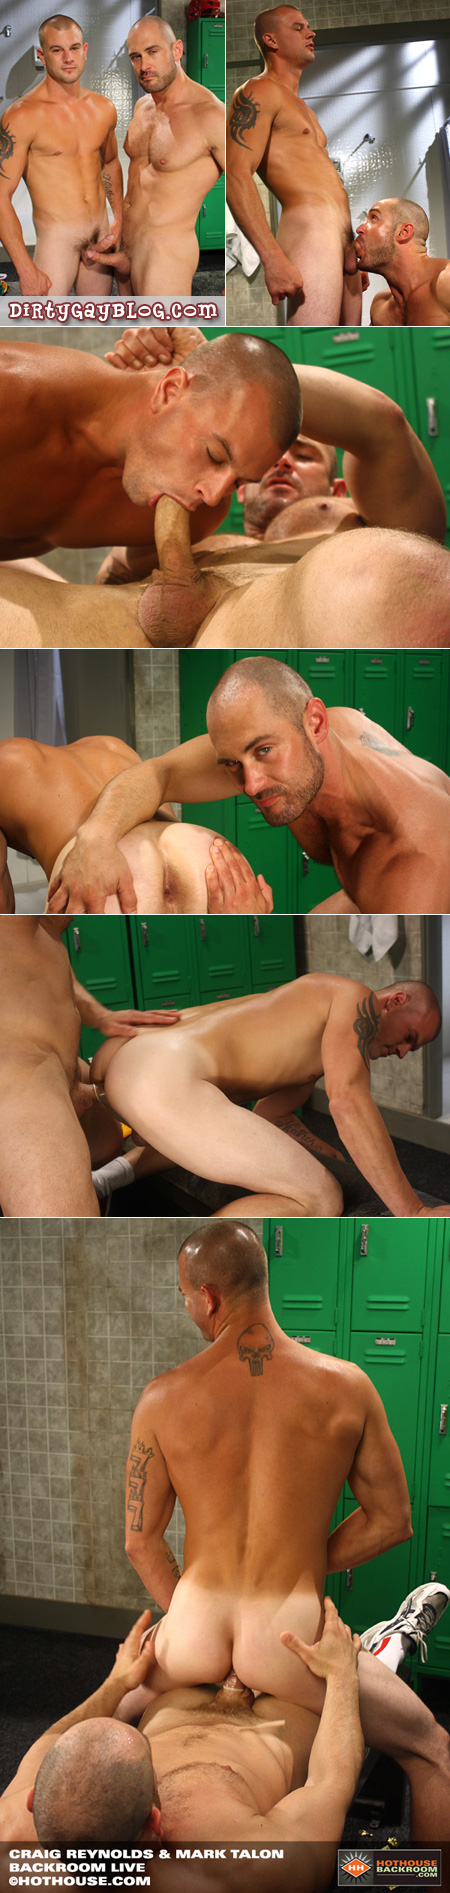 Christopher Meloni look alike fucks him gym buddy's muscular ass in the locker room in athletic socks and shoes